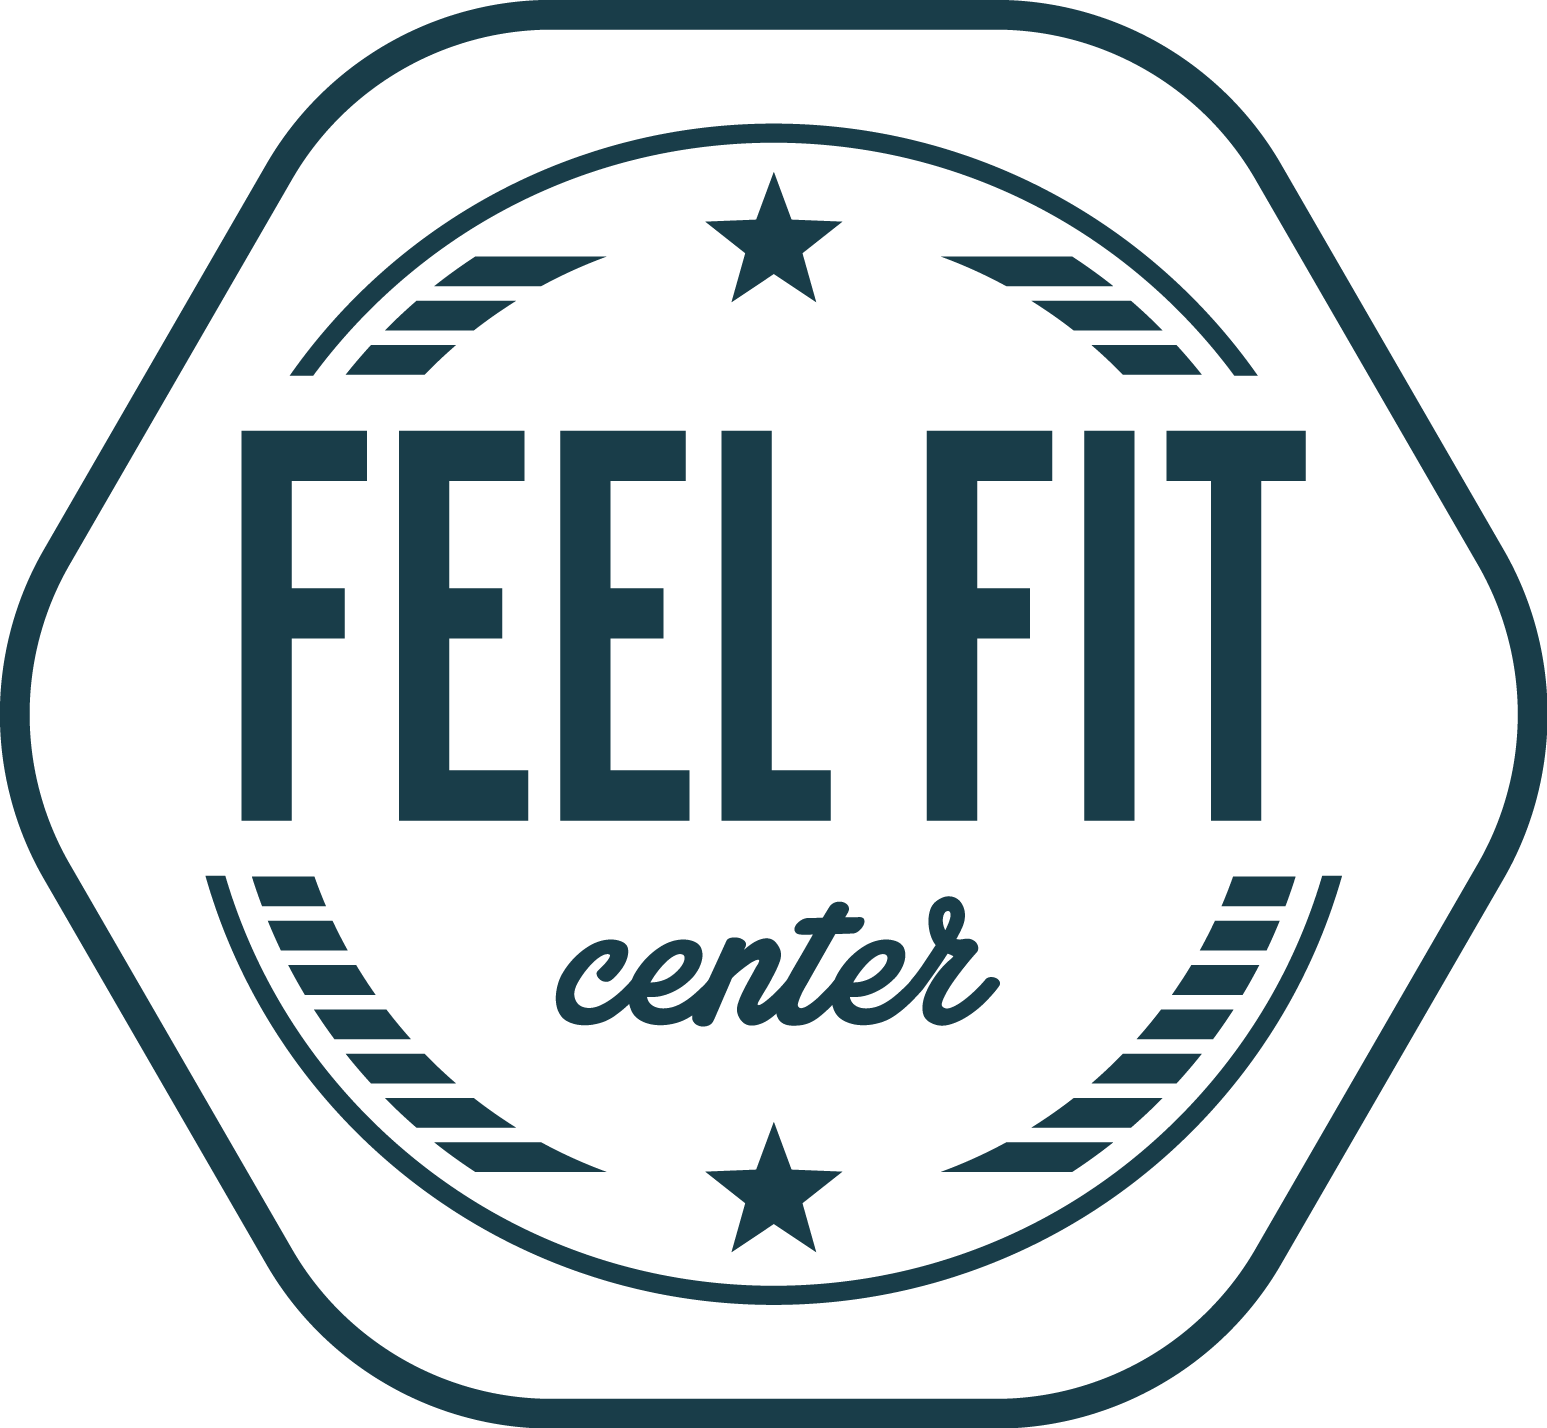 Feel Fit center